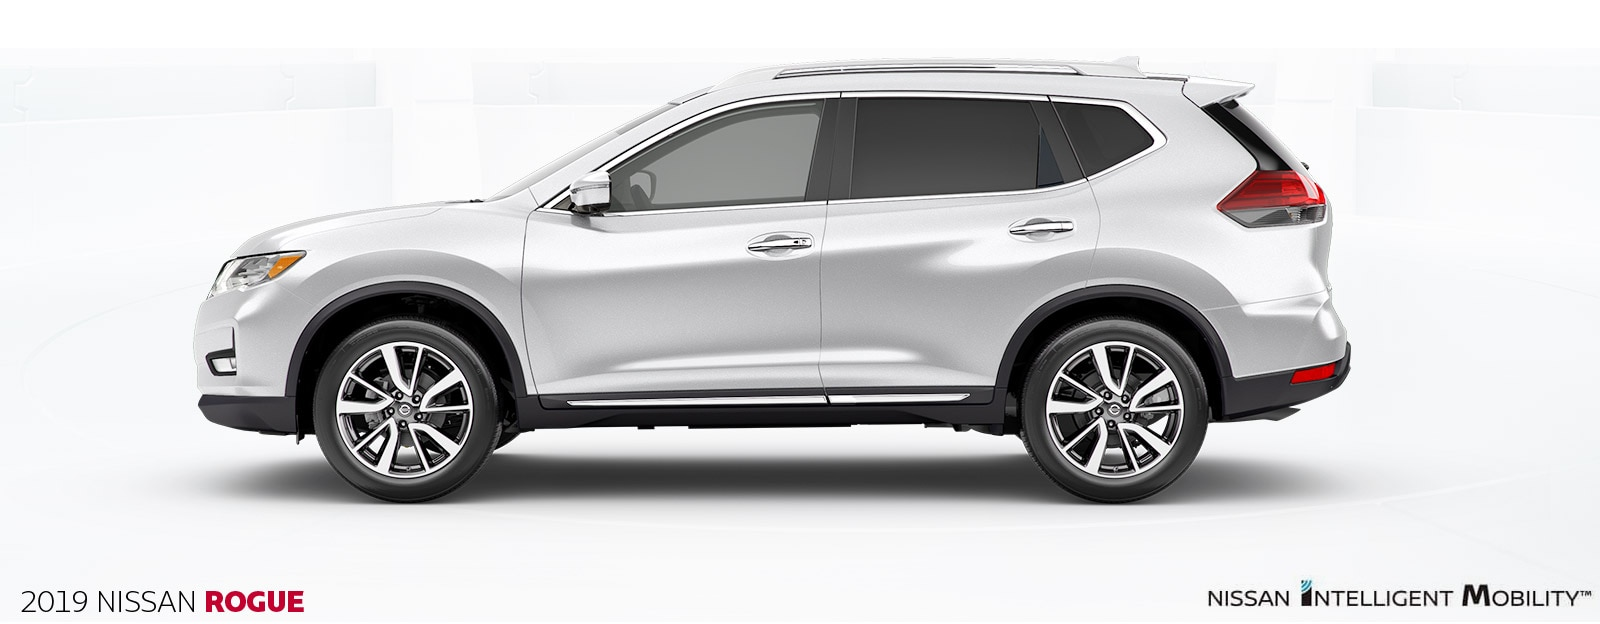 Nissan Rogue best prices in Wallingford